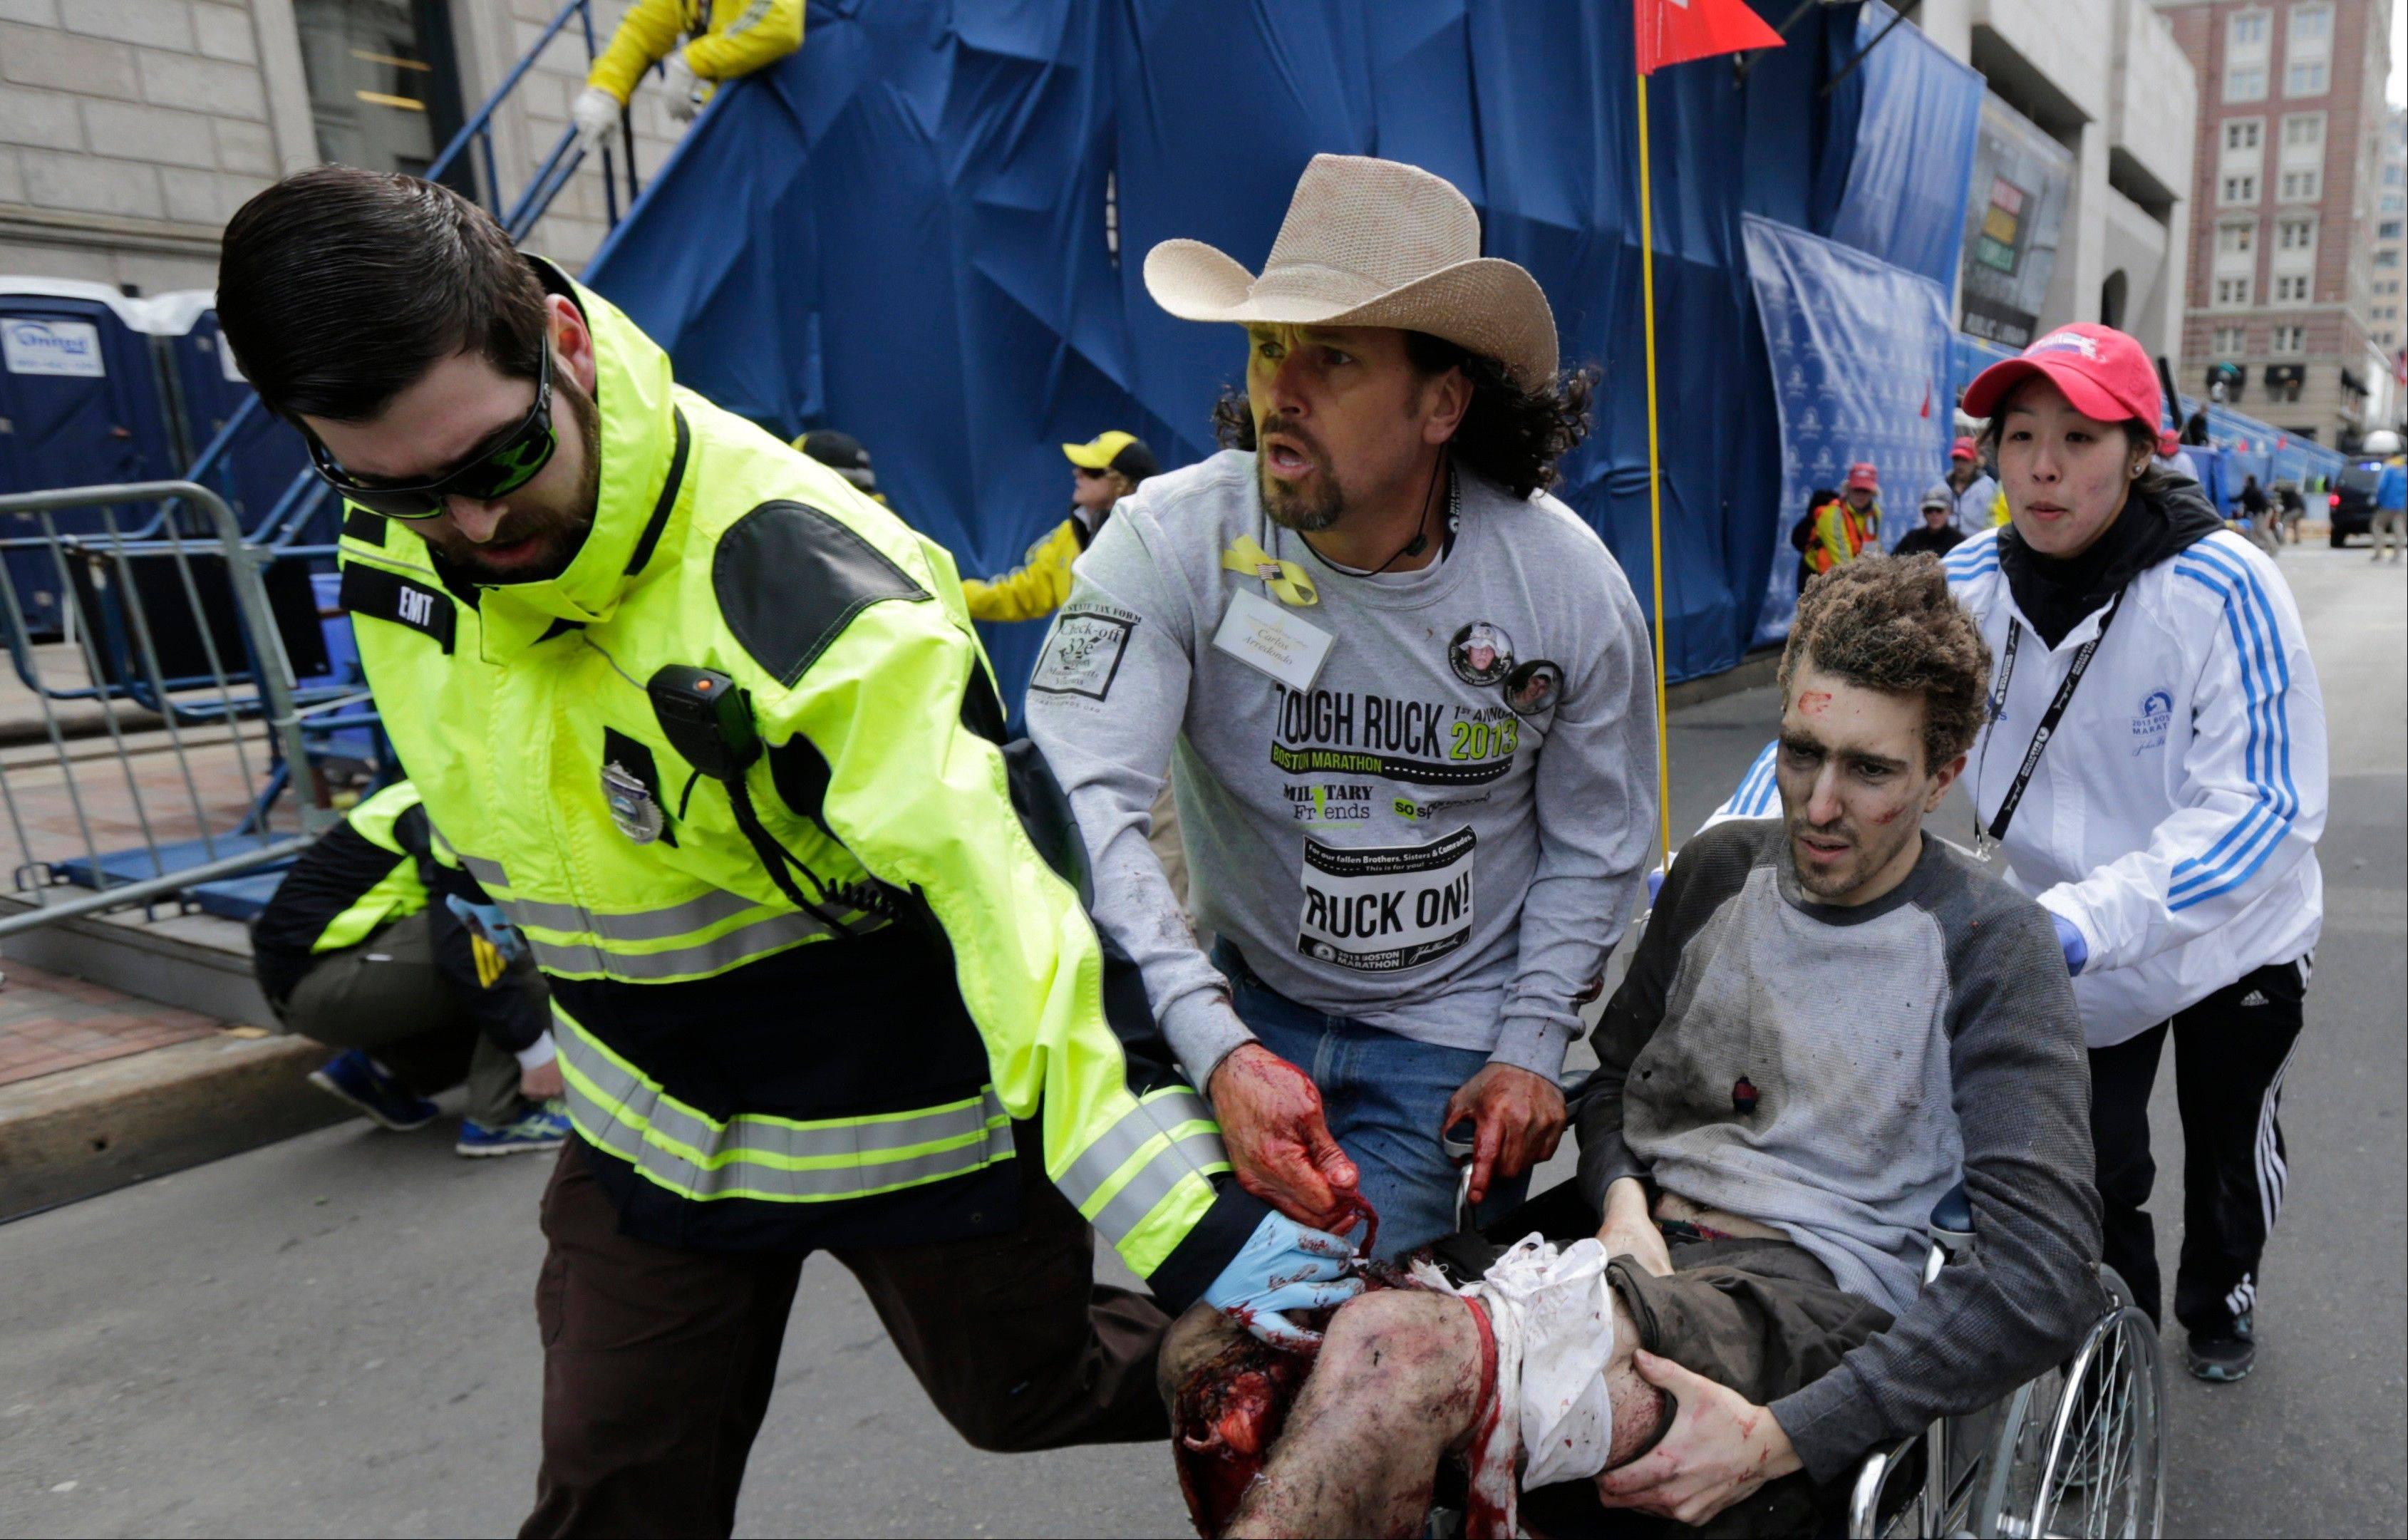 An emergency responder and volunteers, including Carlos Arredondo in the cowboy hat, push Jeff Bauman in a wheel chair after he was injured in an explosion near the finish line of the Boston Marathon April 15, 2013. They will be among the guests who will sit with first lady Michelle Obama Tuesday when President Barack Obama delivers the annual State of the Union address.